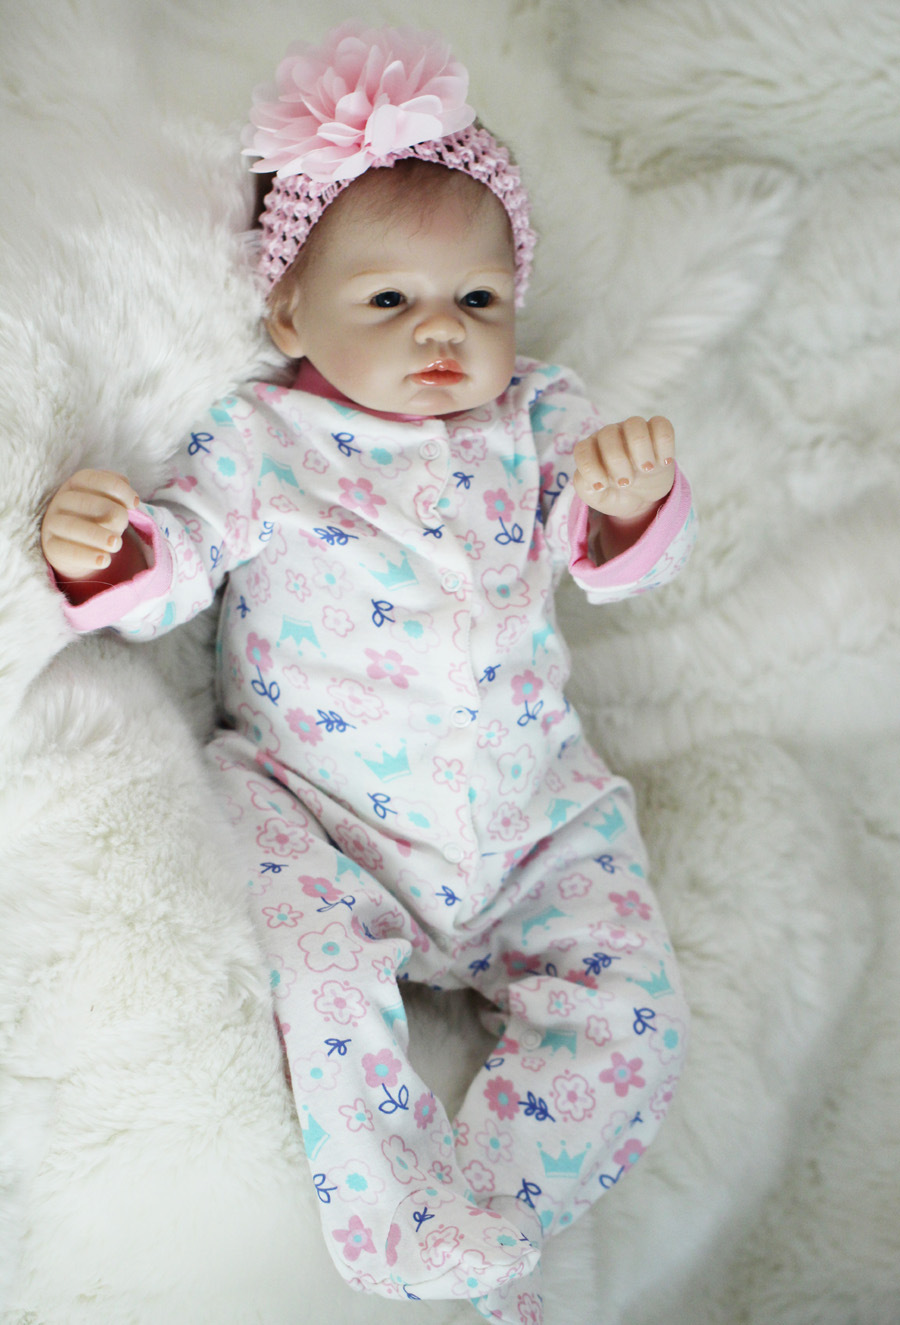 silicone reborn baby soft body With Cotton 22'' npk Realistic Doll Reborn Babies cute 55 cm bebe Growth Partner cheaper Juguetes npk cute smile baby girl dolls real soft silicone reborn babies 55 cm with fiber hair realistic boneca reborn doll